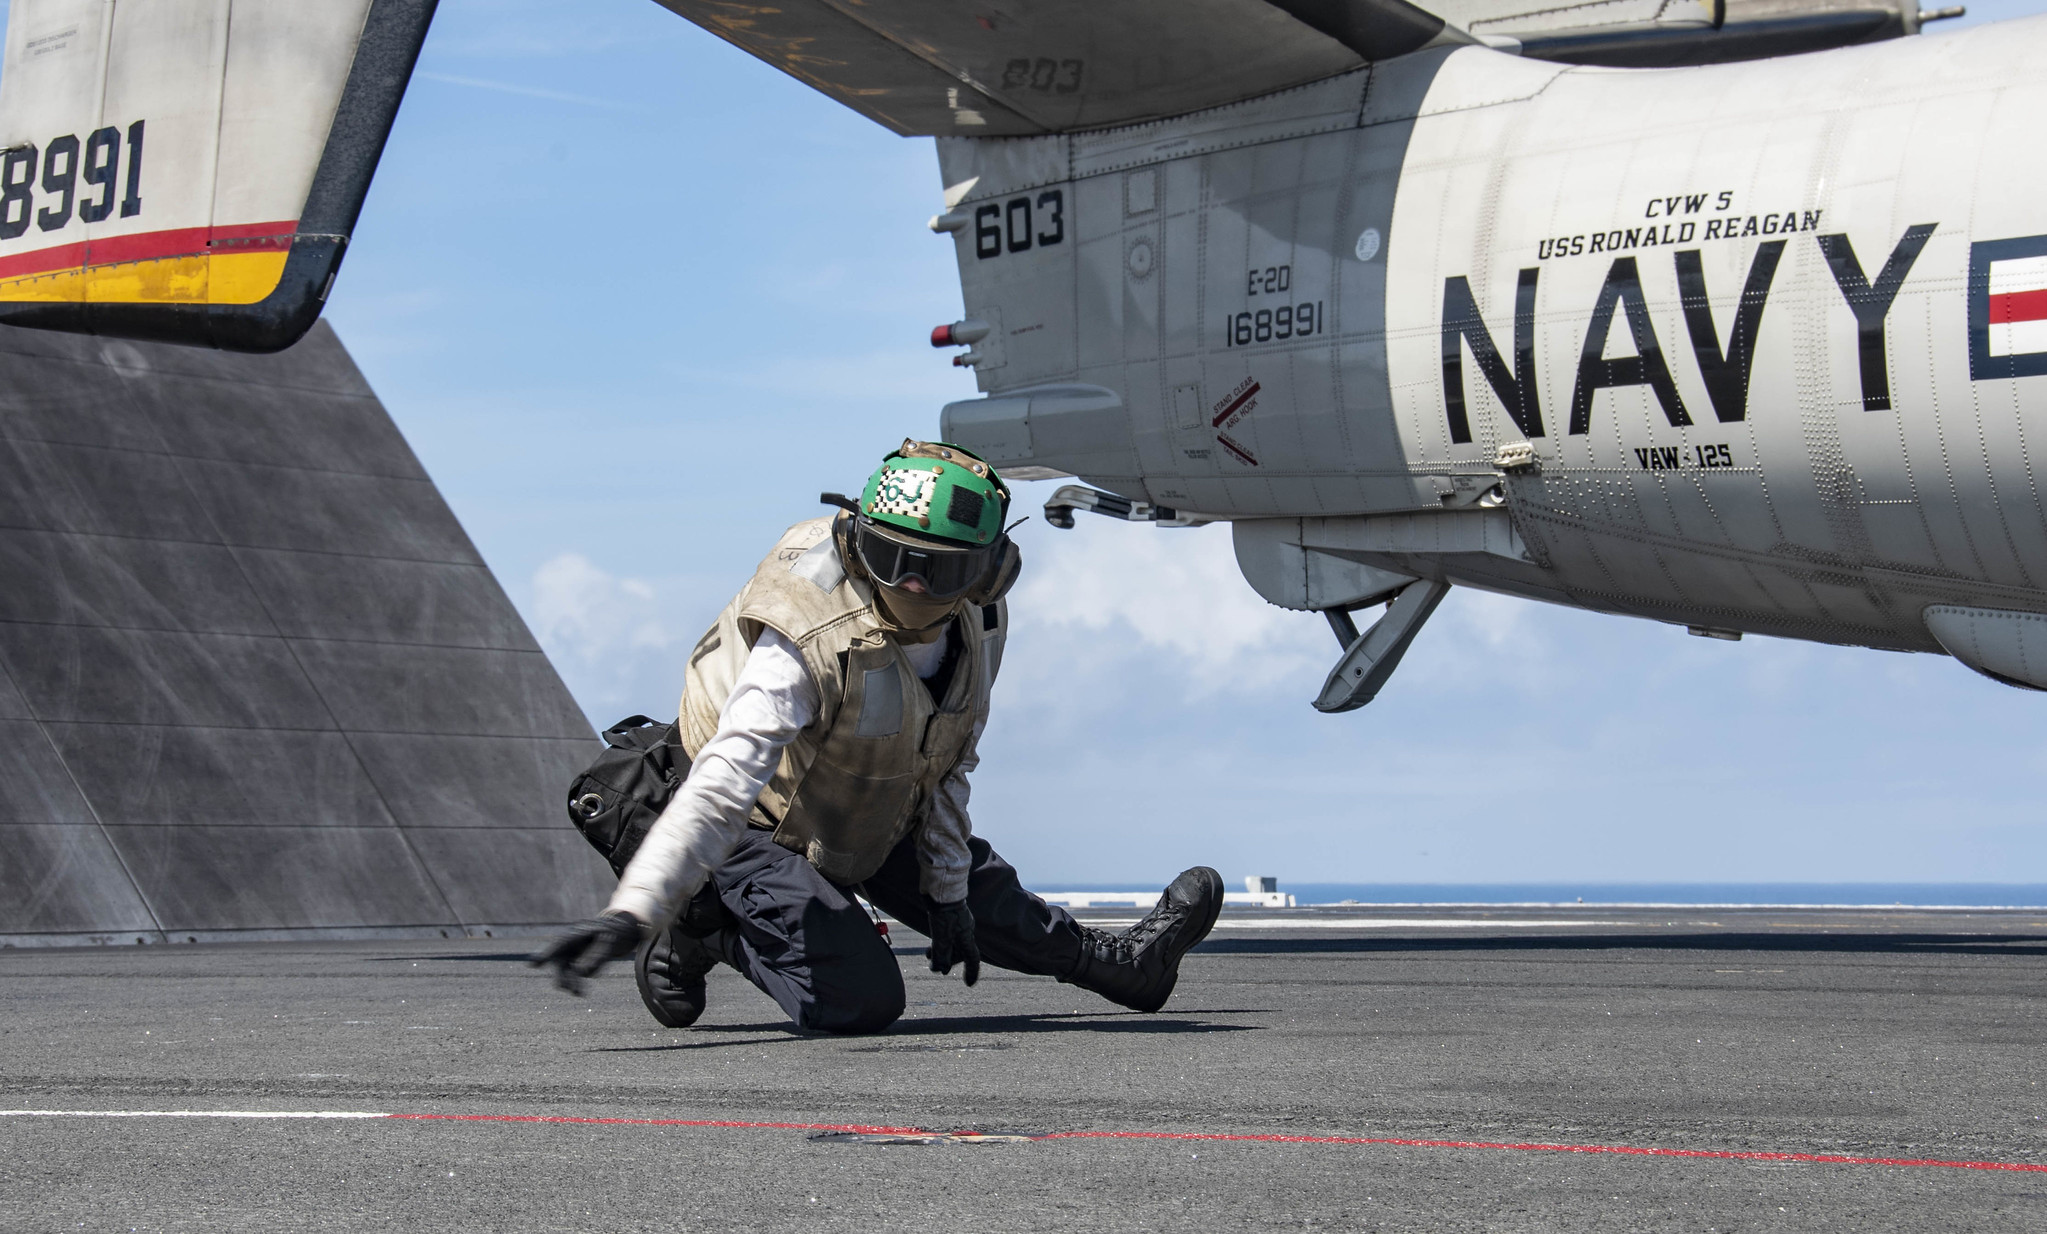 Aviation Machinist's Mate 3rd Class Brandee Robinson conducts final checks on an E-2D Hawkeye as it prepares to launch from the flight deck of the aircraft carrier USS Ronald Reagan (CVN 76) on Aug. 2, 2020, in the Pacific Ocean. (MC3 Erica Bechard/Navy)